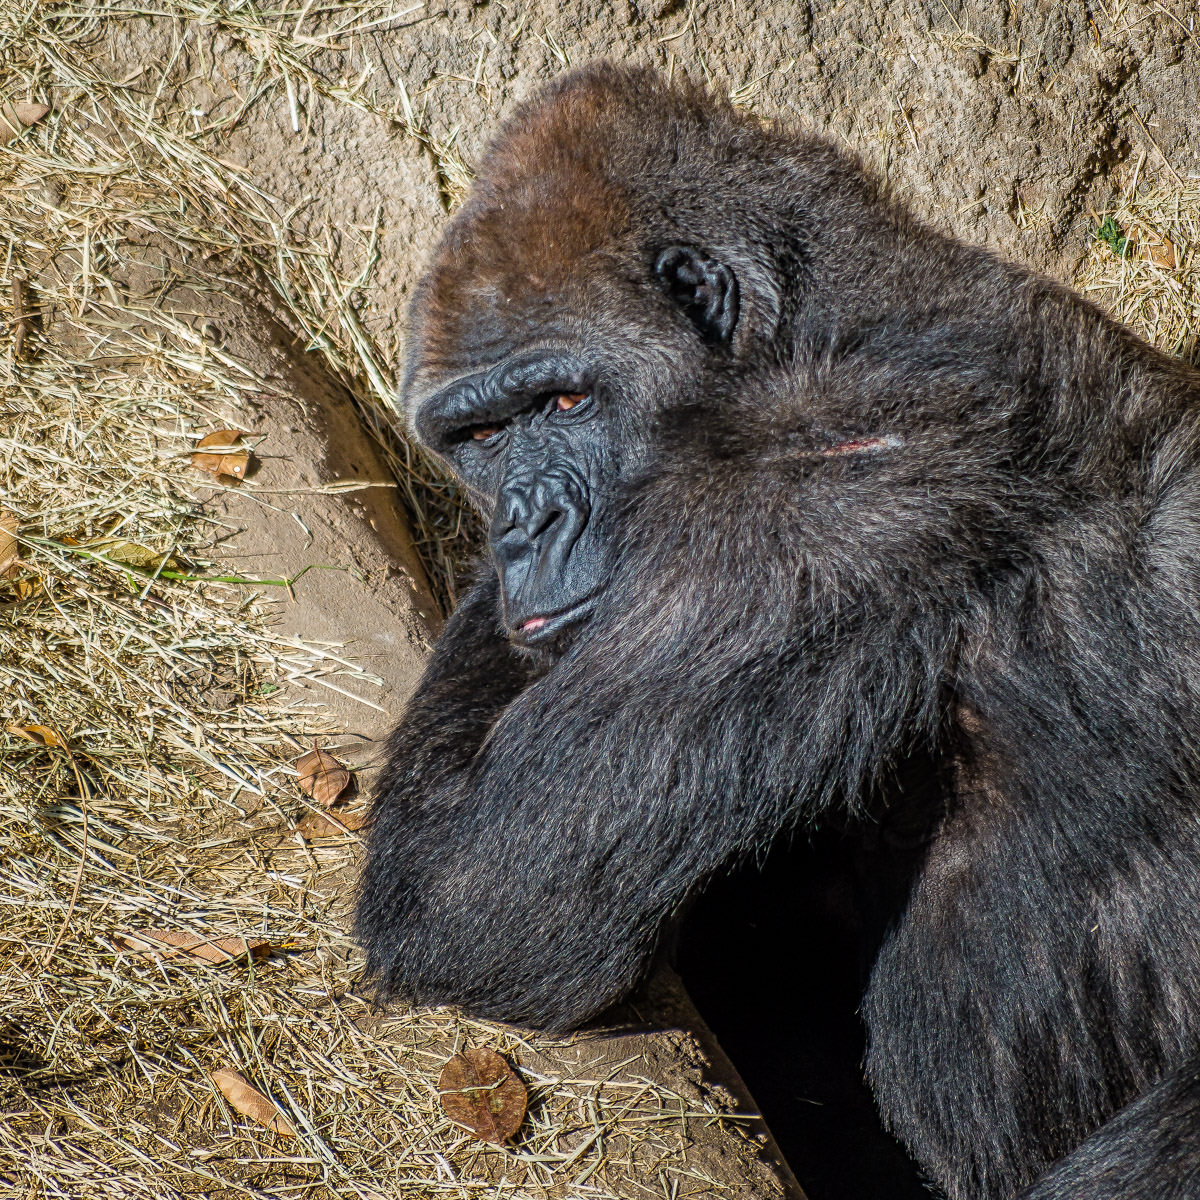 A gorilla at the Dallas Zoo seems to resent having his photo taken.